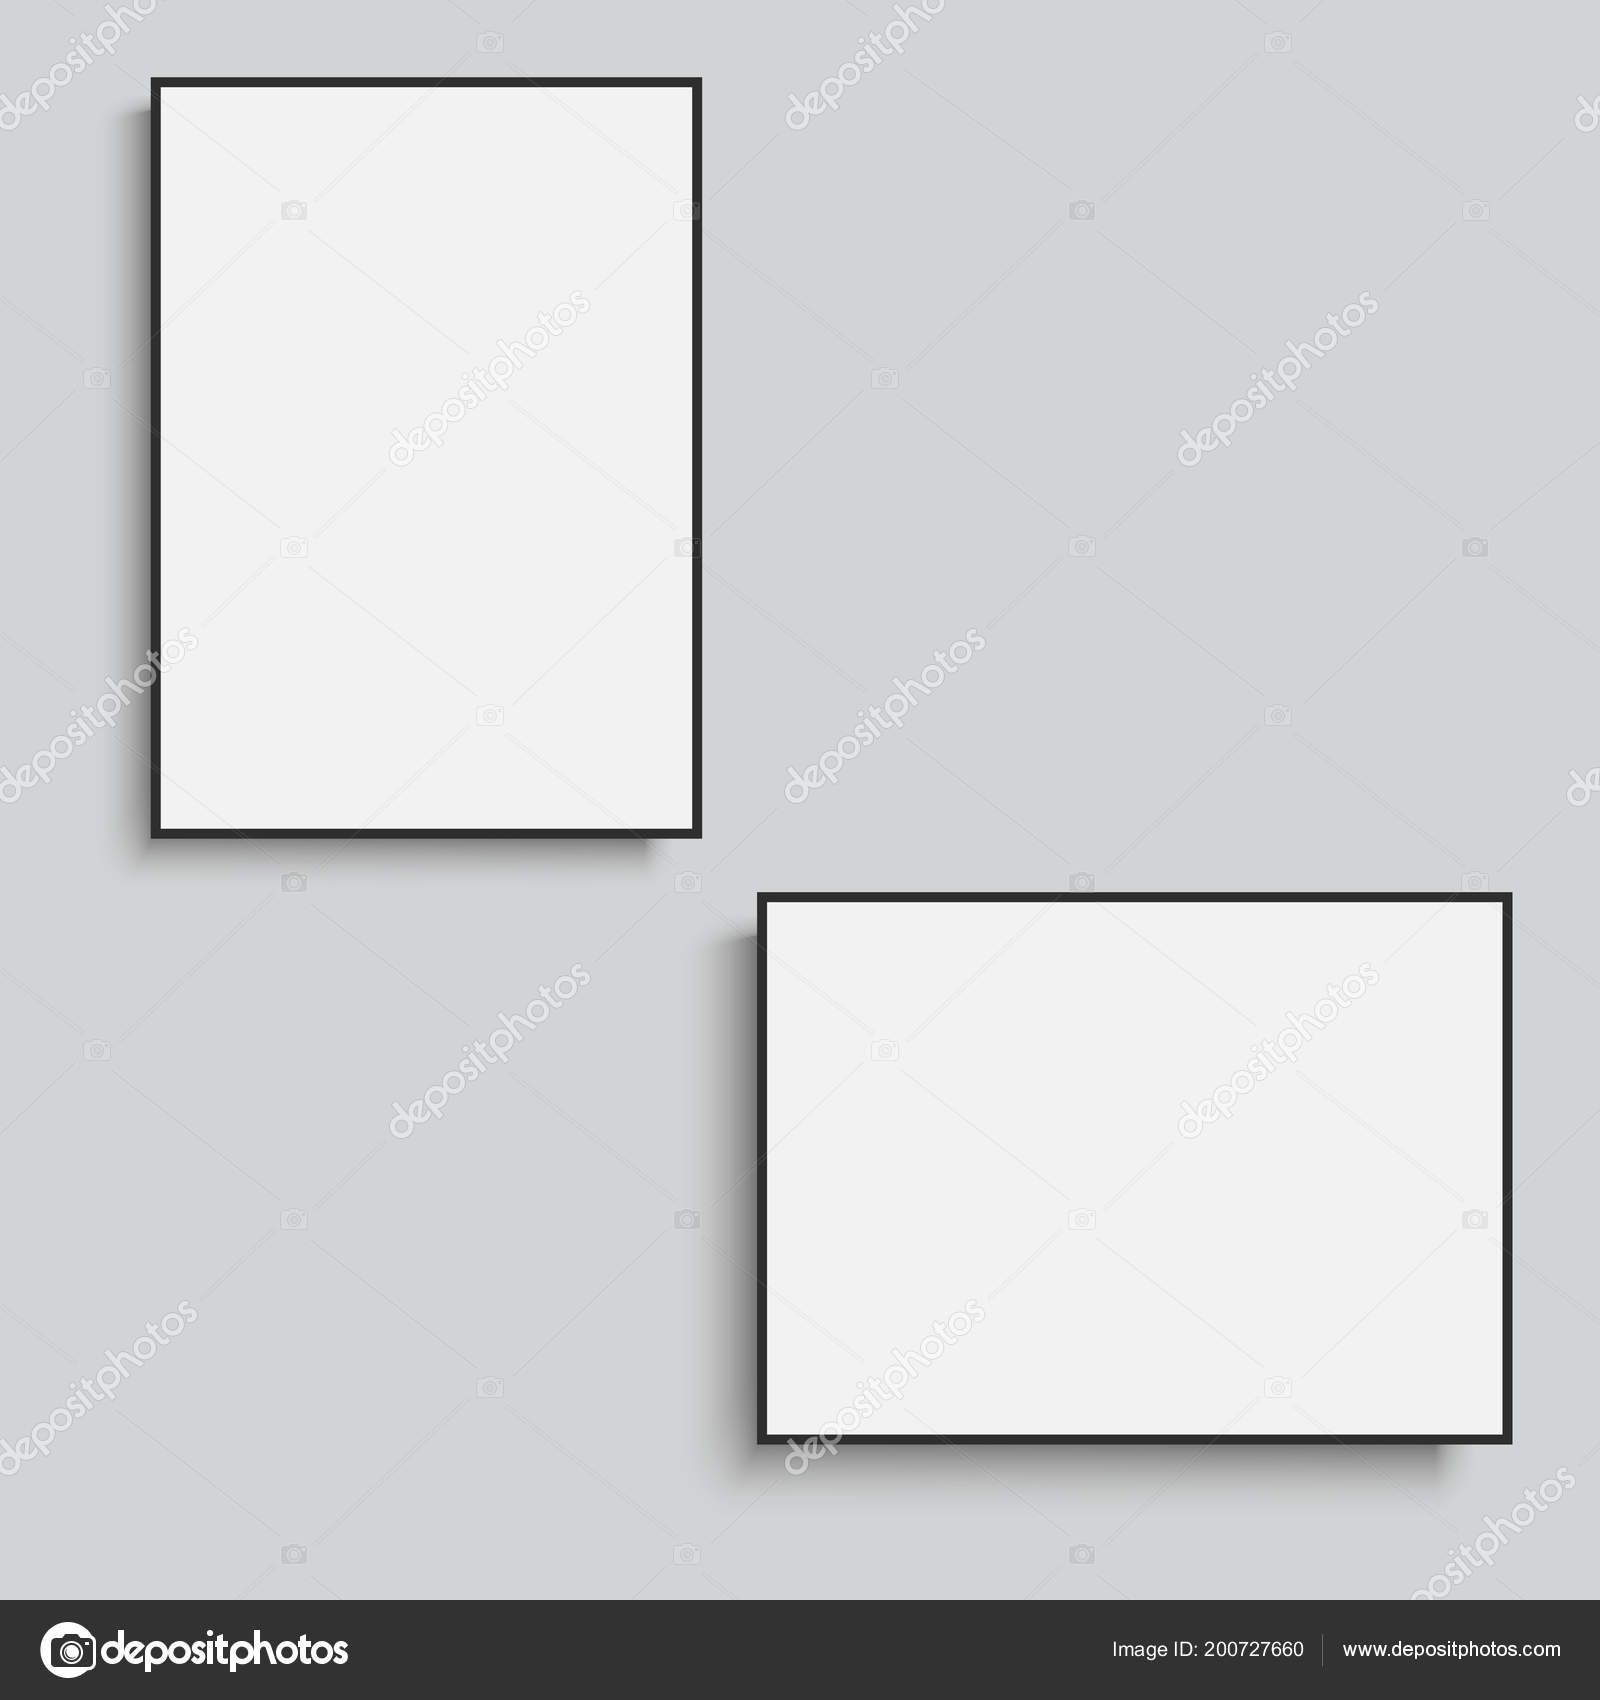 White Horizontal And Vertical Frames Vector Stock Vector